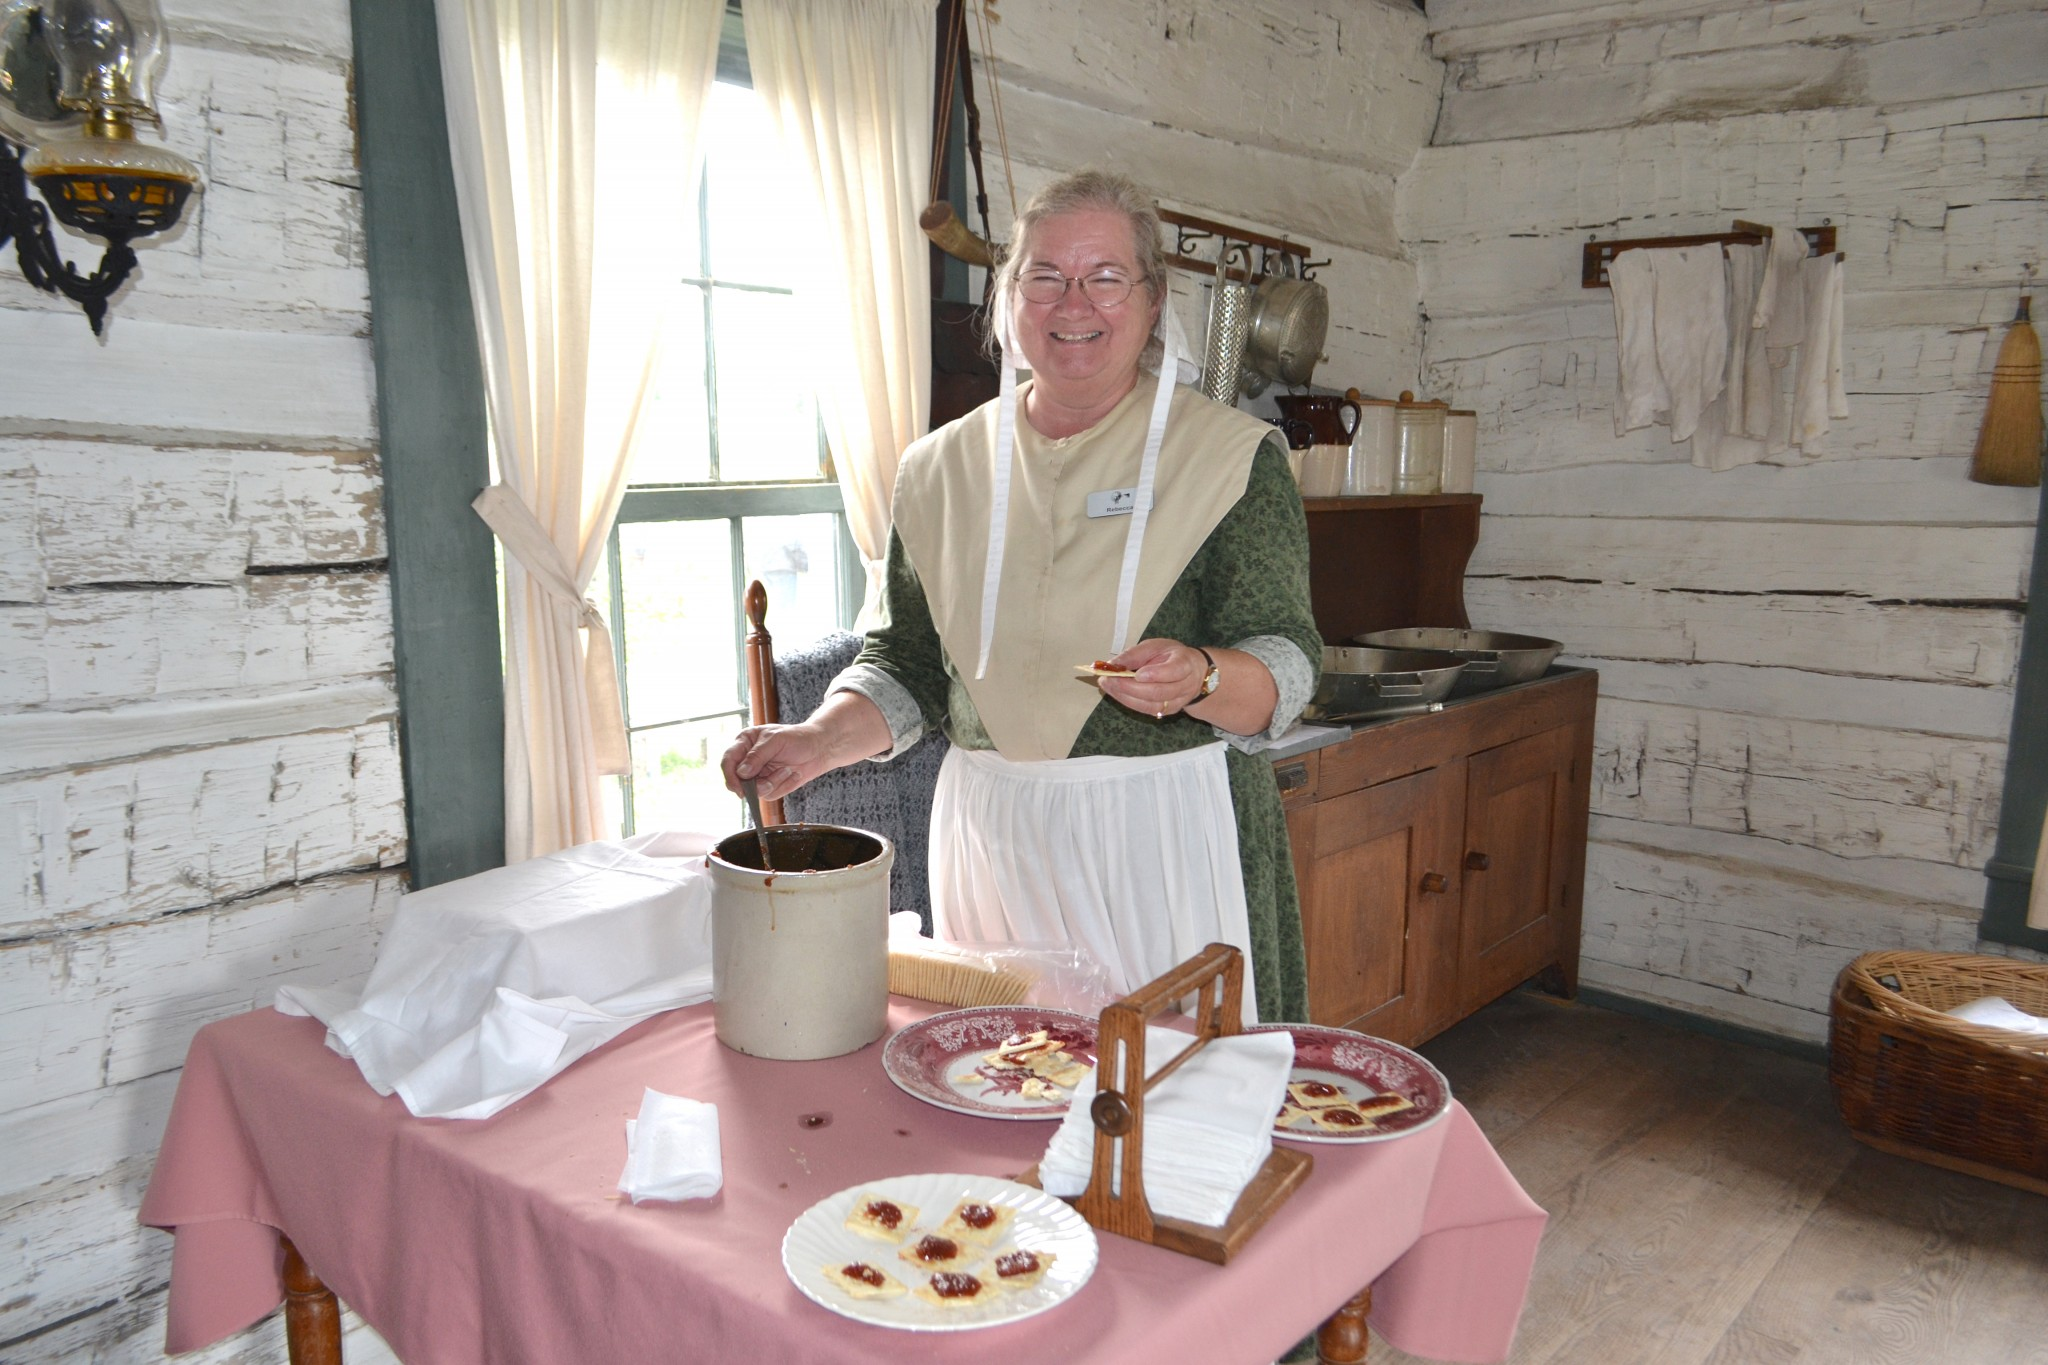 Apple Week at Sauder Village, set for Sept. 17-21, will delight all the senses with such events as cider pressing, apple cooking demonstrations, apple-themed activities, apple butter making and more. (Photo courtesy of Sauder Village)